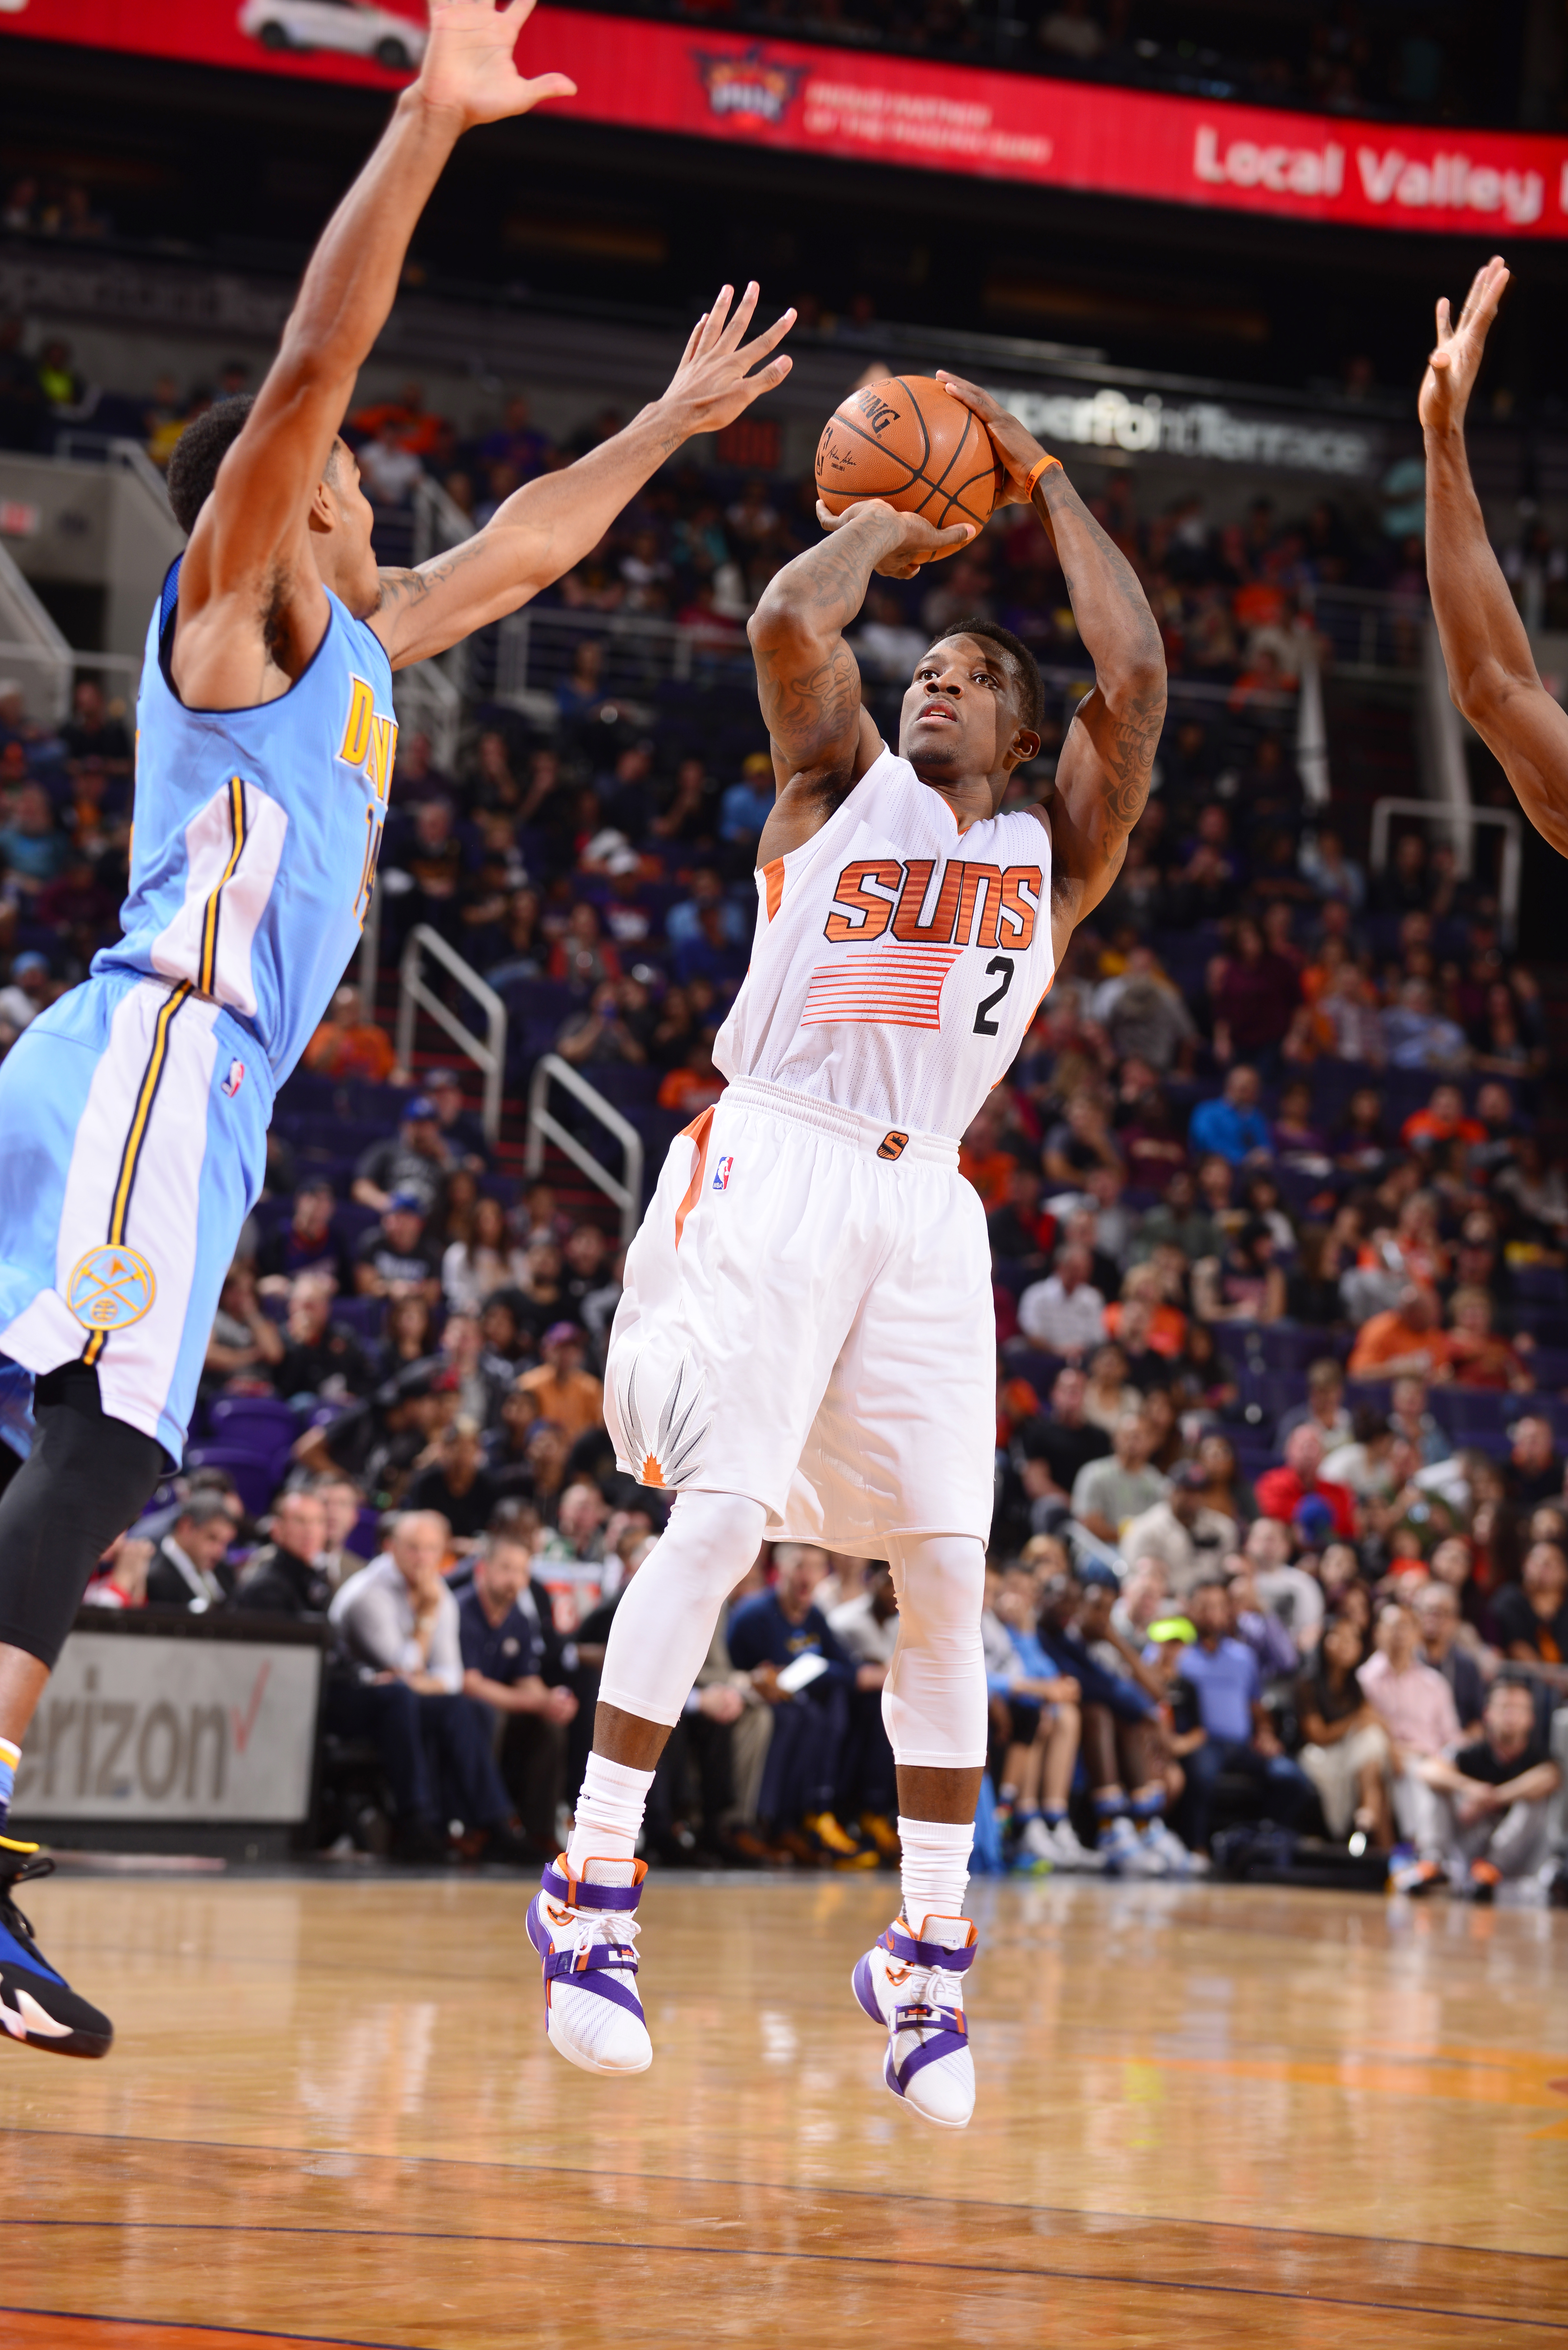 PHOENIX, AZ - NOVEMBER 14: Eric Bledsoe #2 of the Phoenix Suns shoots against the Denver Nuggets during the game on November 14, 2015 at Talking Stick Resort Arena in Phoenix, Arizona. (Photo by Barry Gossage/NBAE via Getty Images)